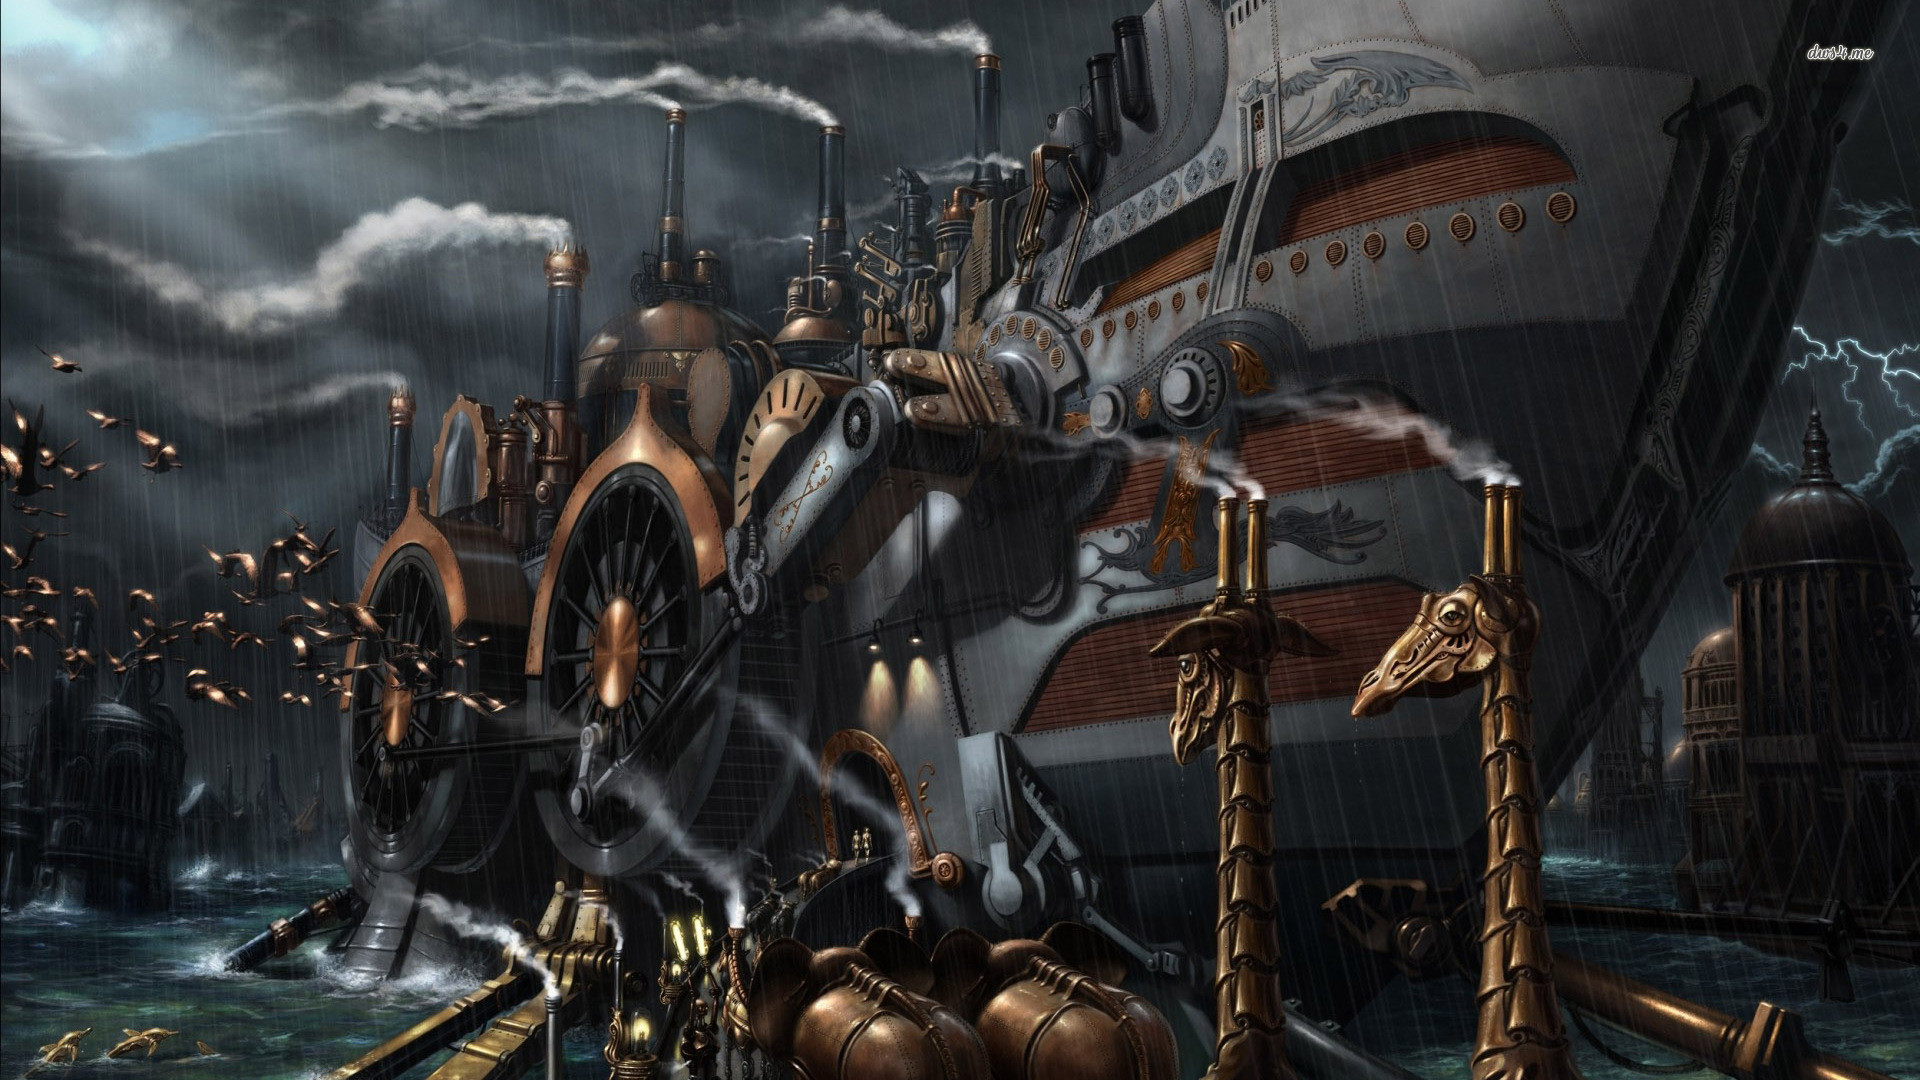 steampunk wallpaper 1920x1080